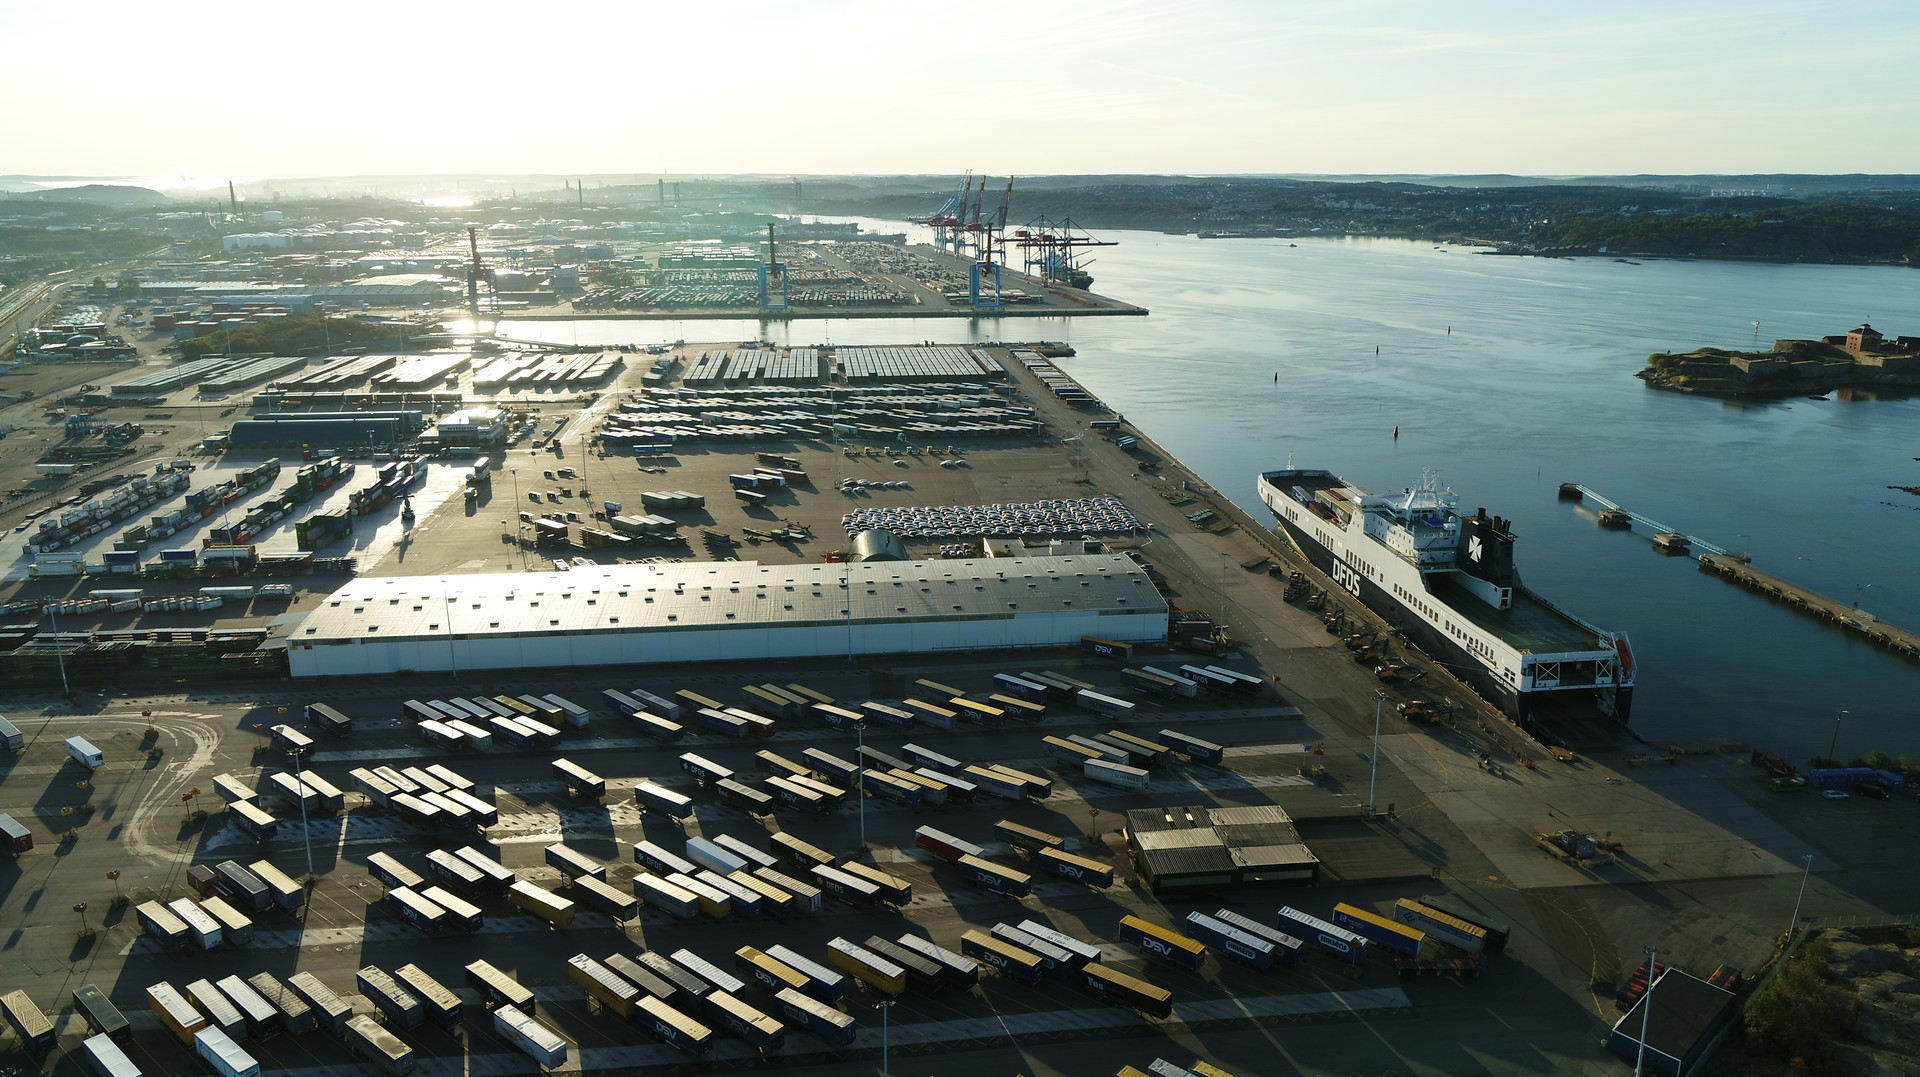 Green shipping, Long-form article